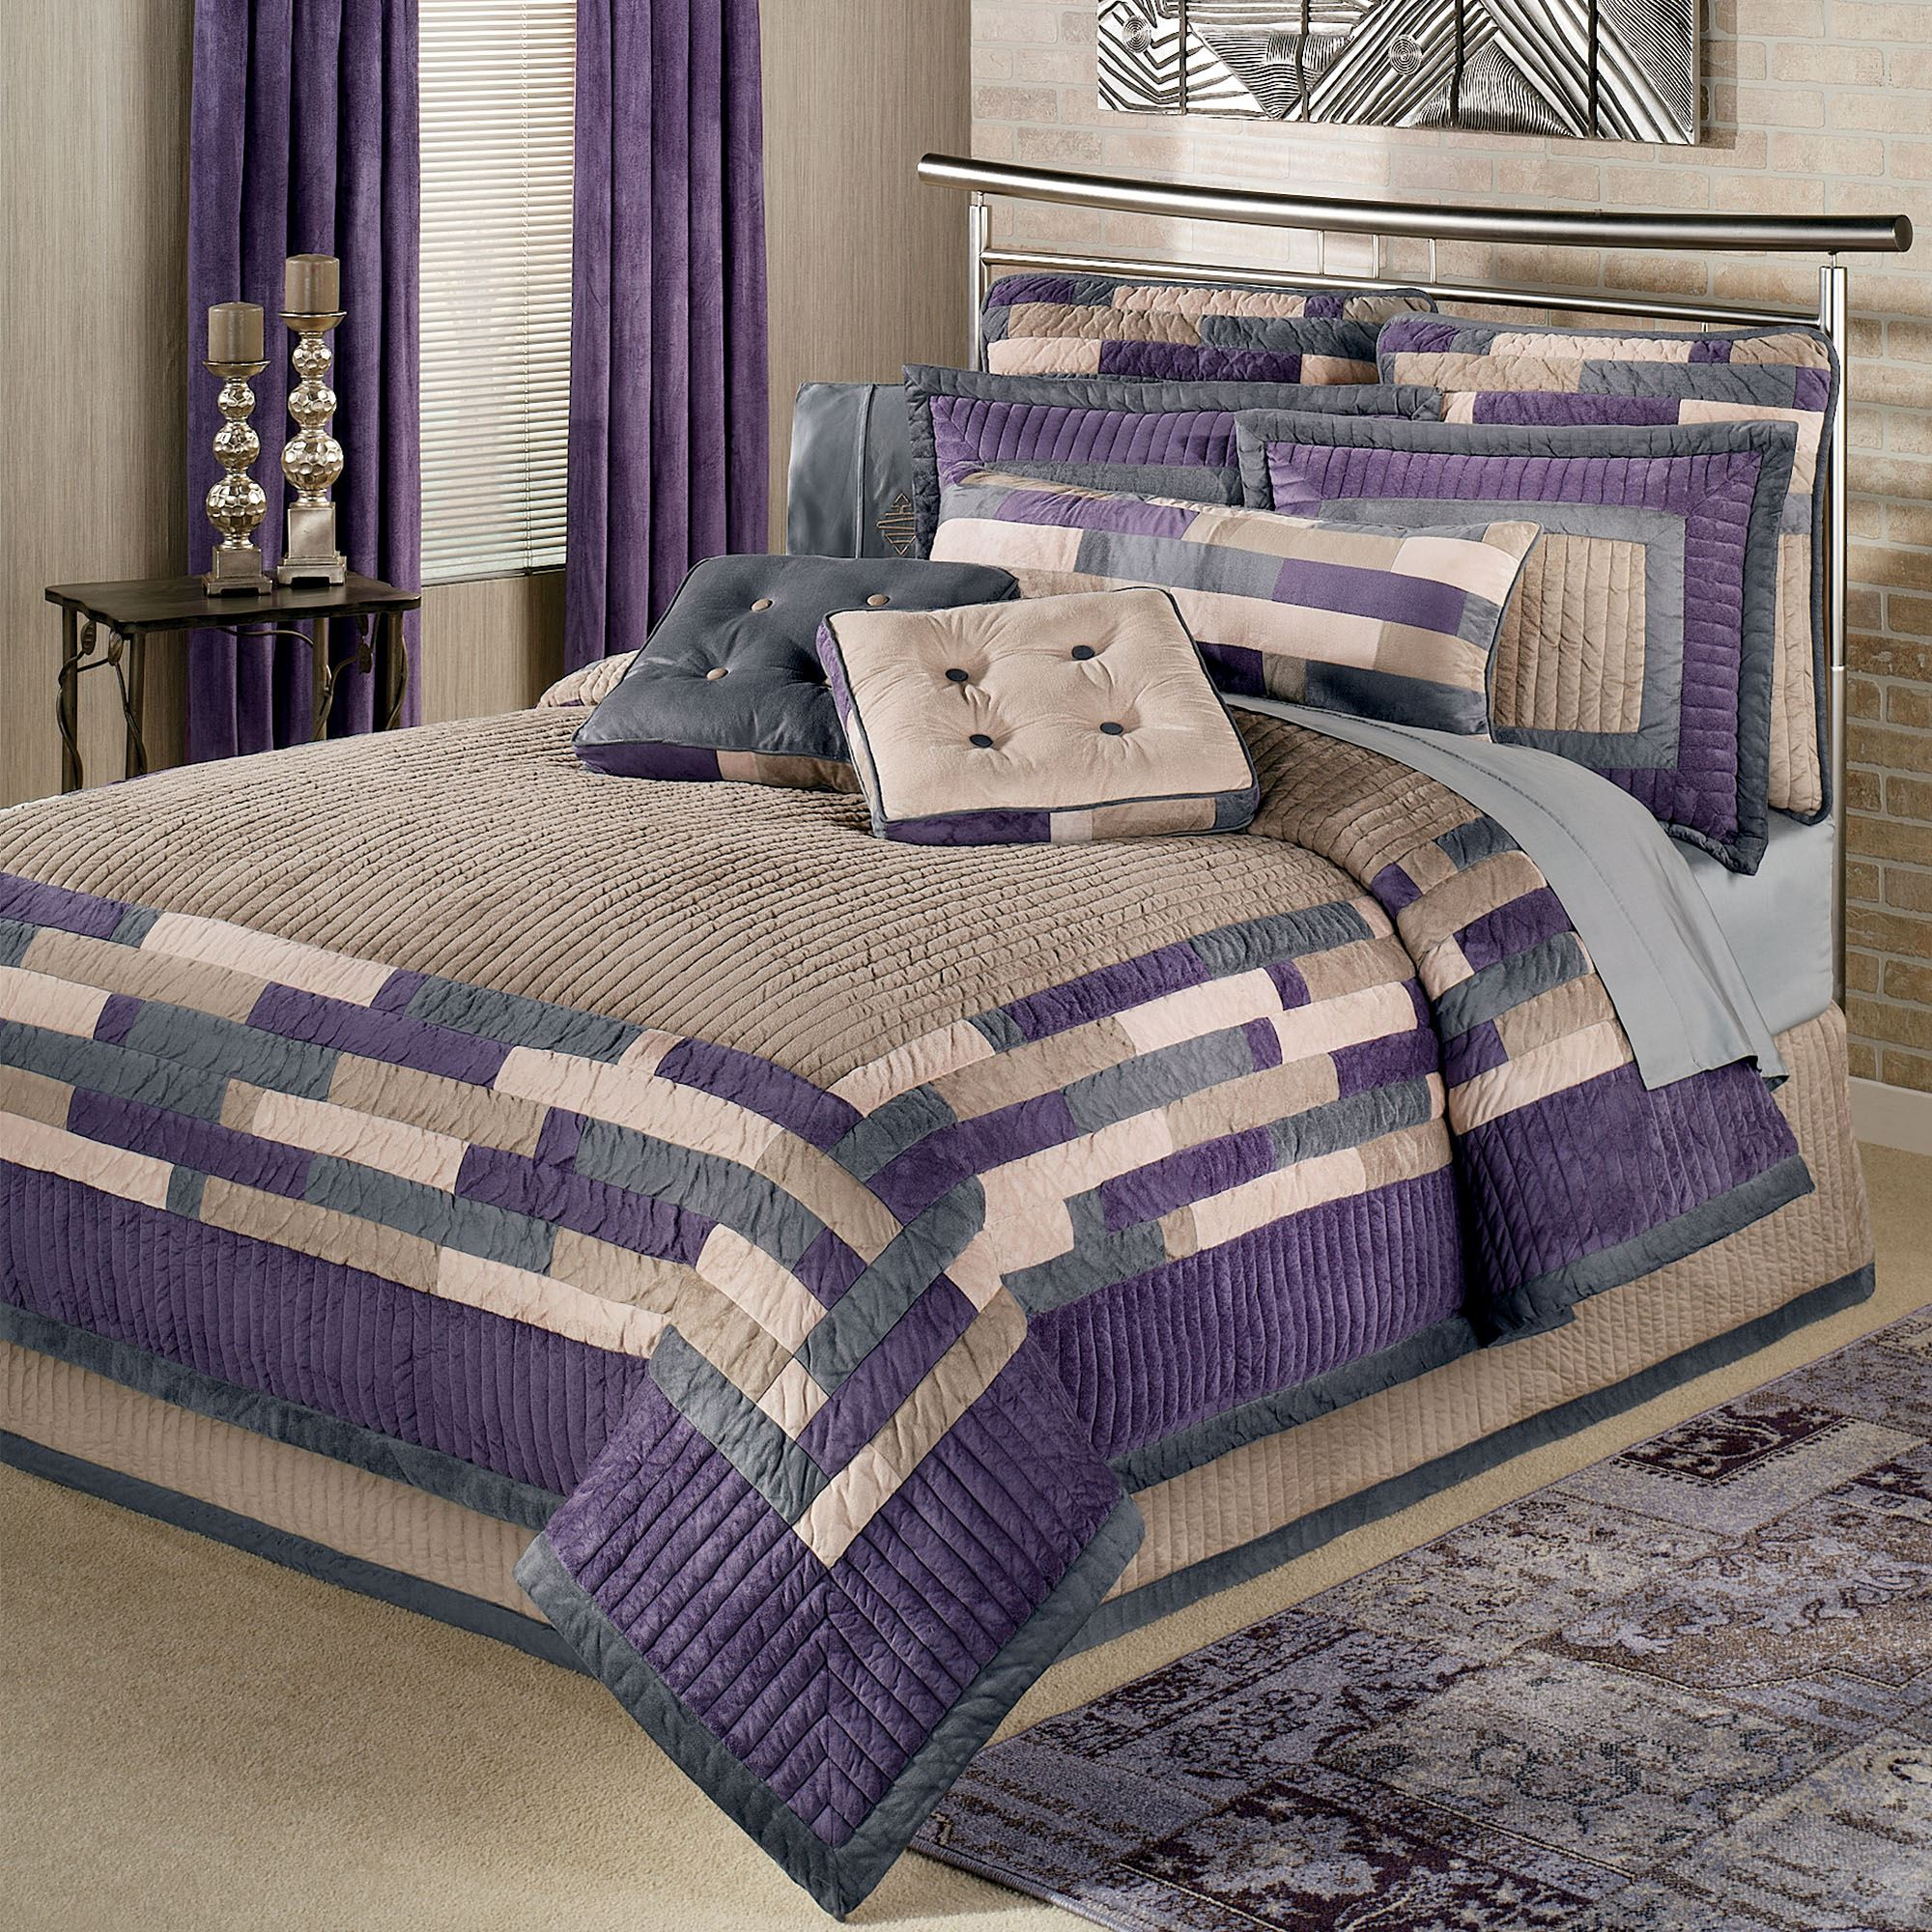 bed and set product purple linen cover modern bedding contemporary duvet quilt